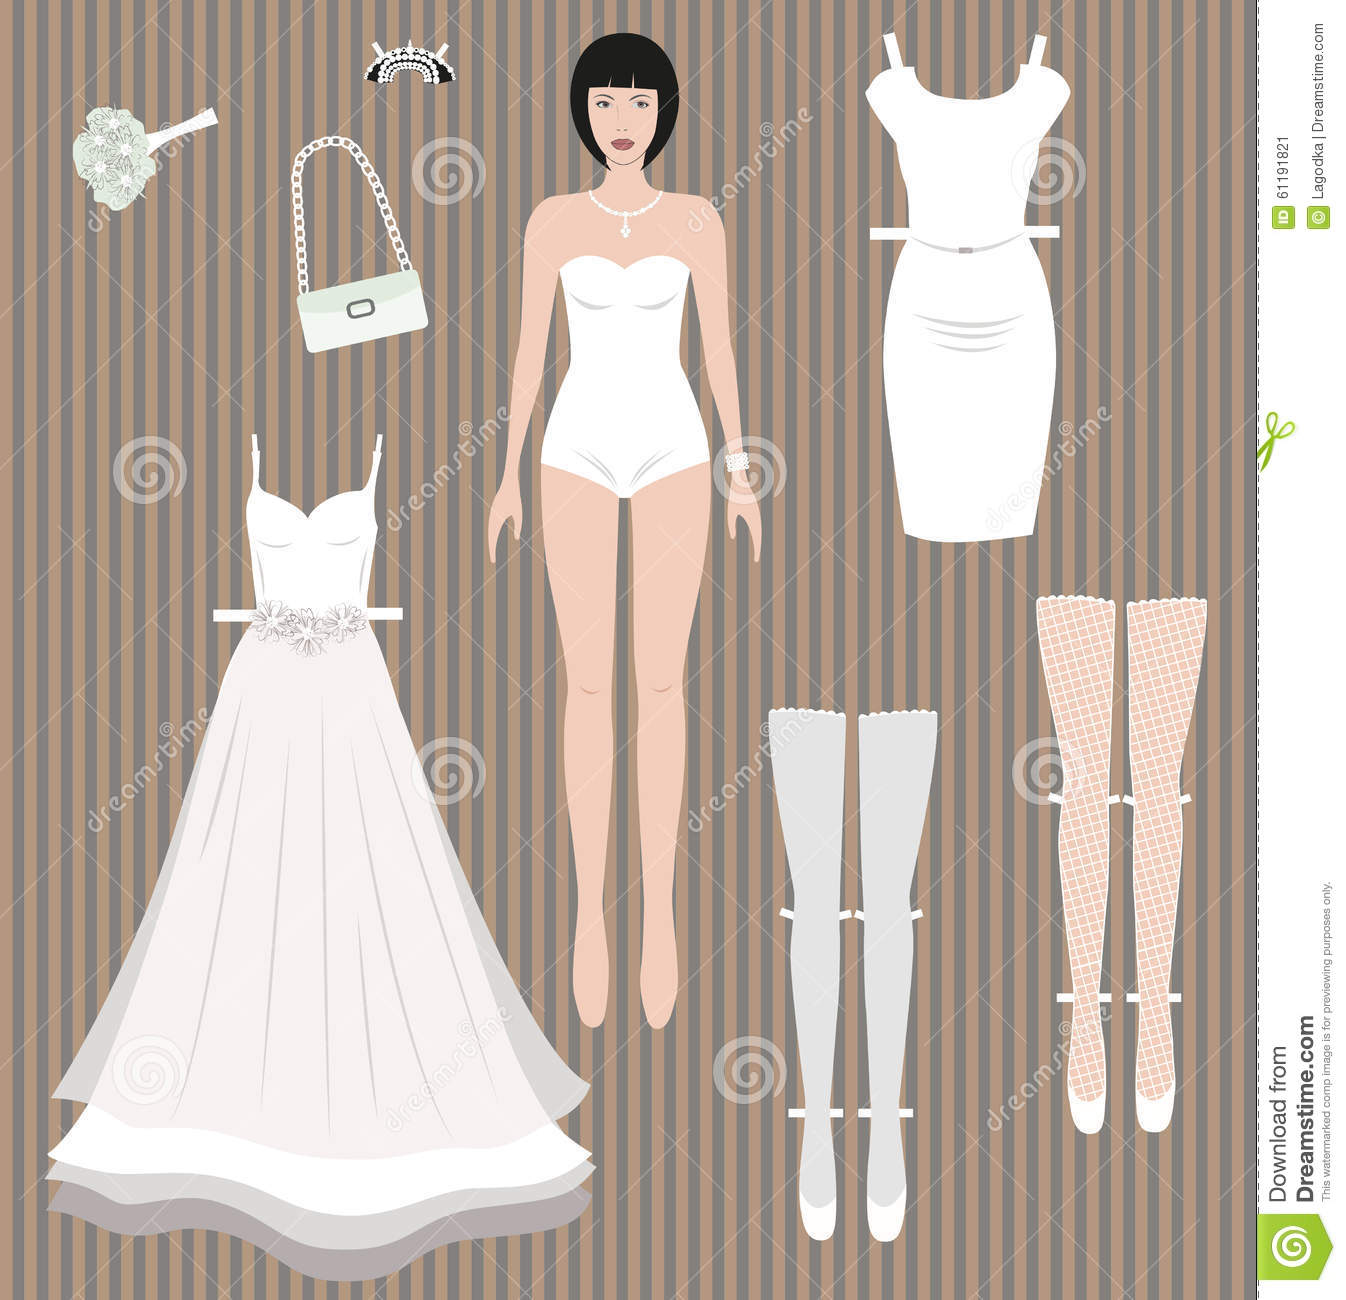 Category: Interactive Paper Doll Games